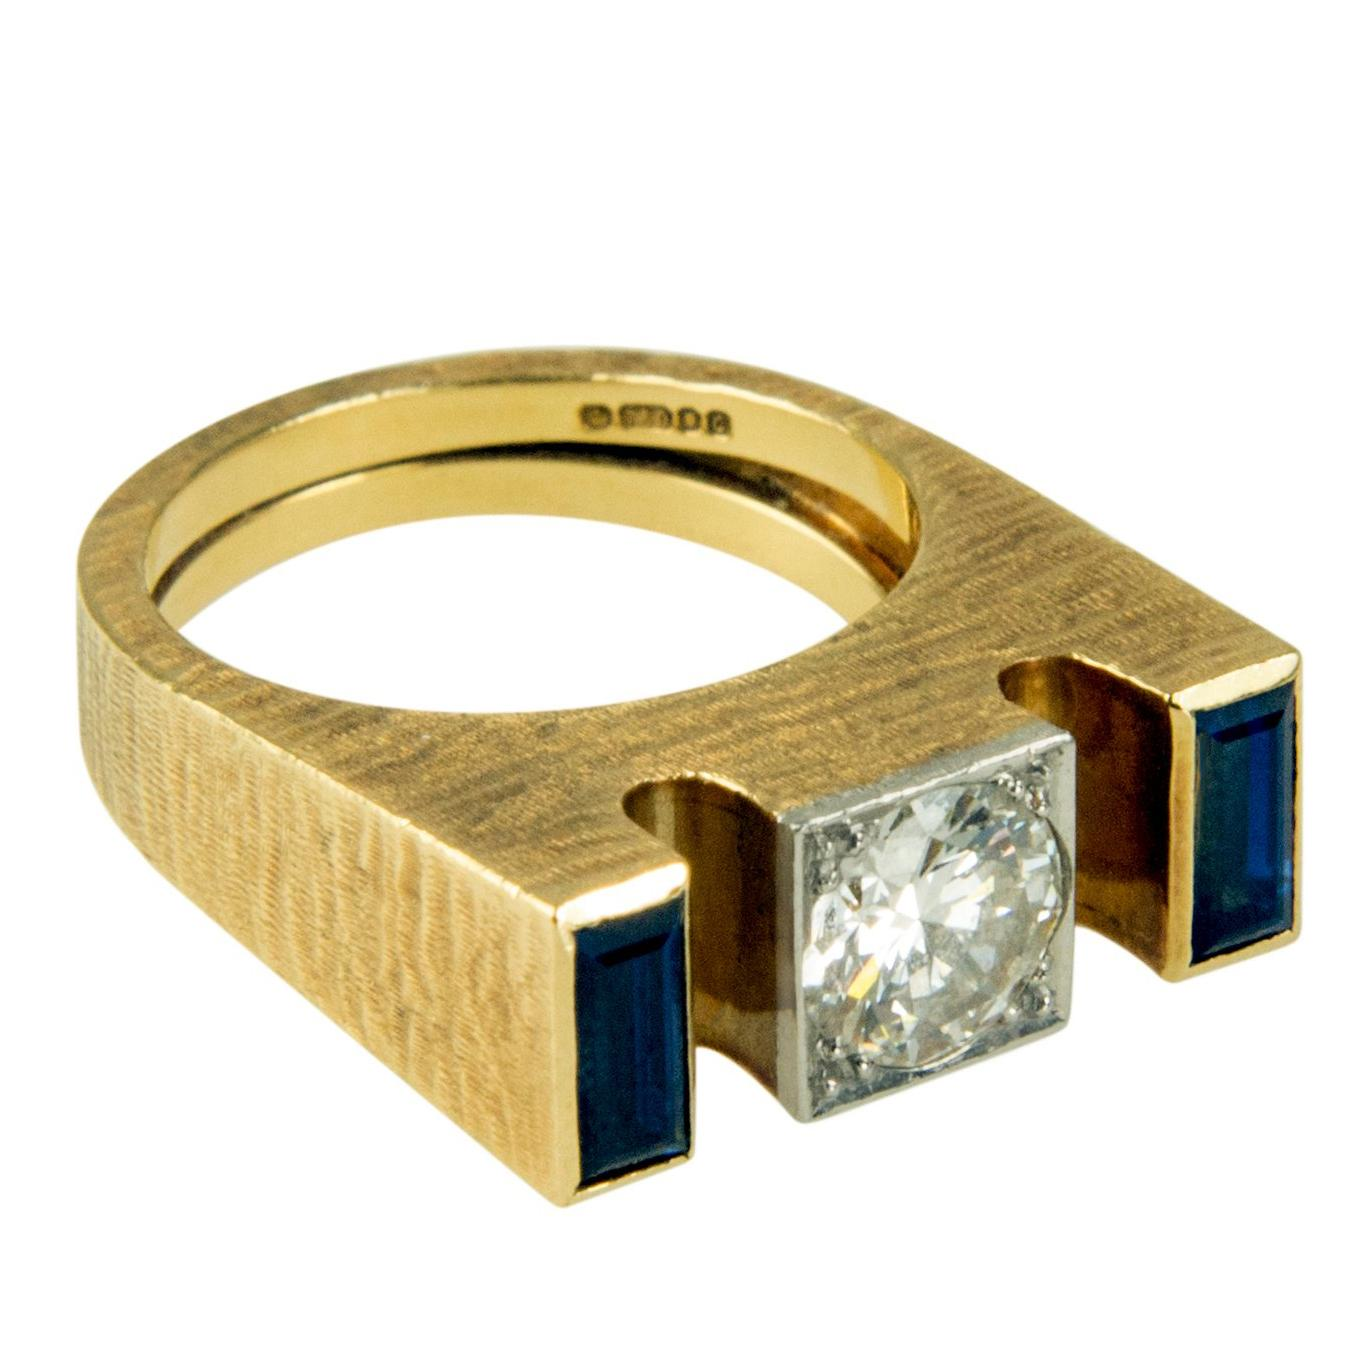 1977 Andrew Grima, Diamond, Sapphire & Engraved Gold Ring